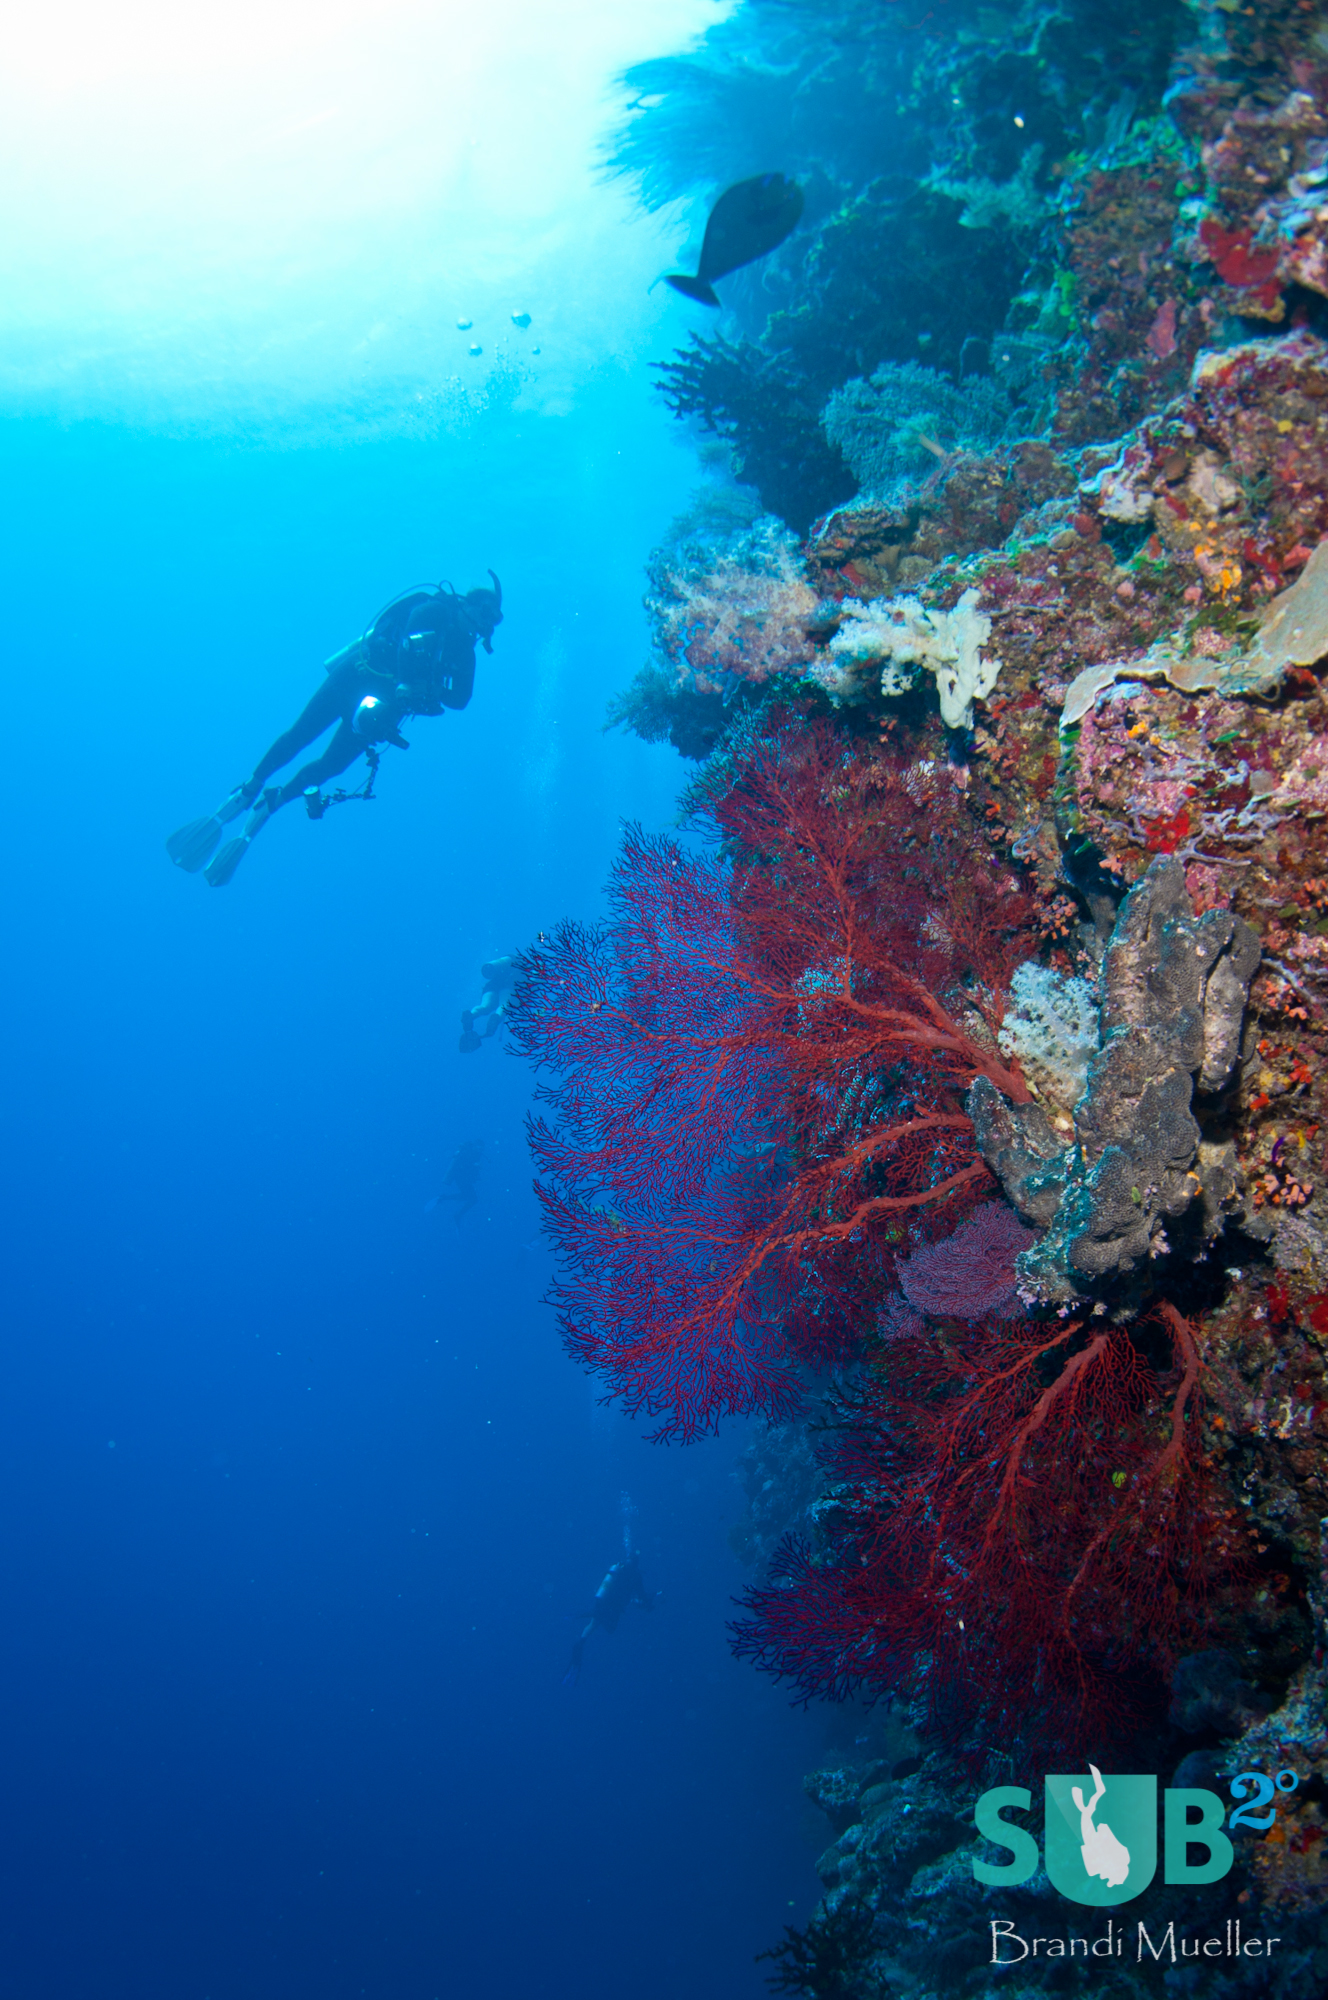 Drifting from Blue Holes to Blue Corner, this diver inspects the beautiful wall with red sea fans.